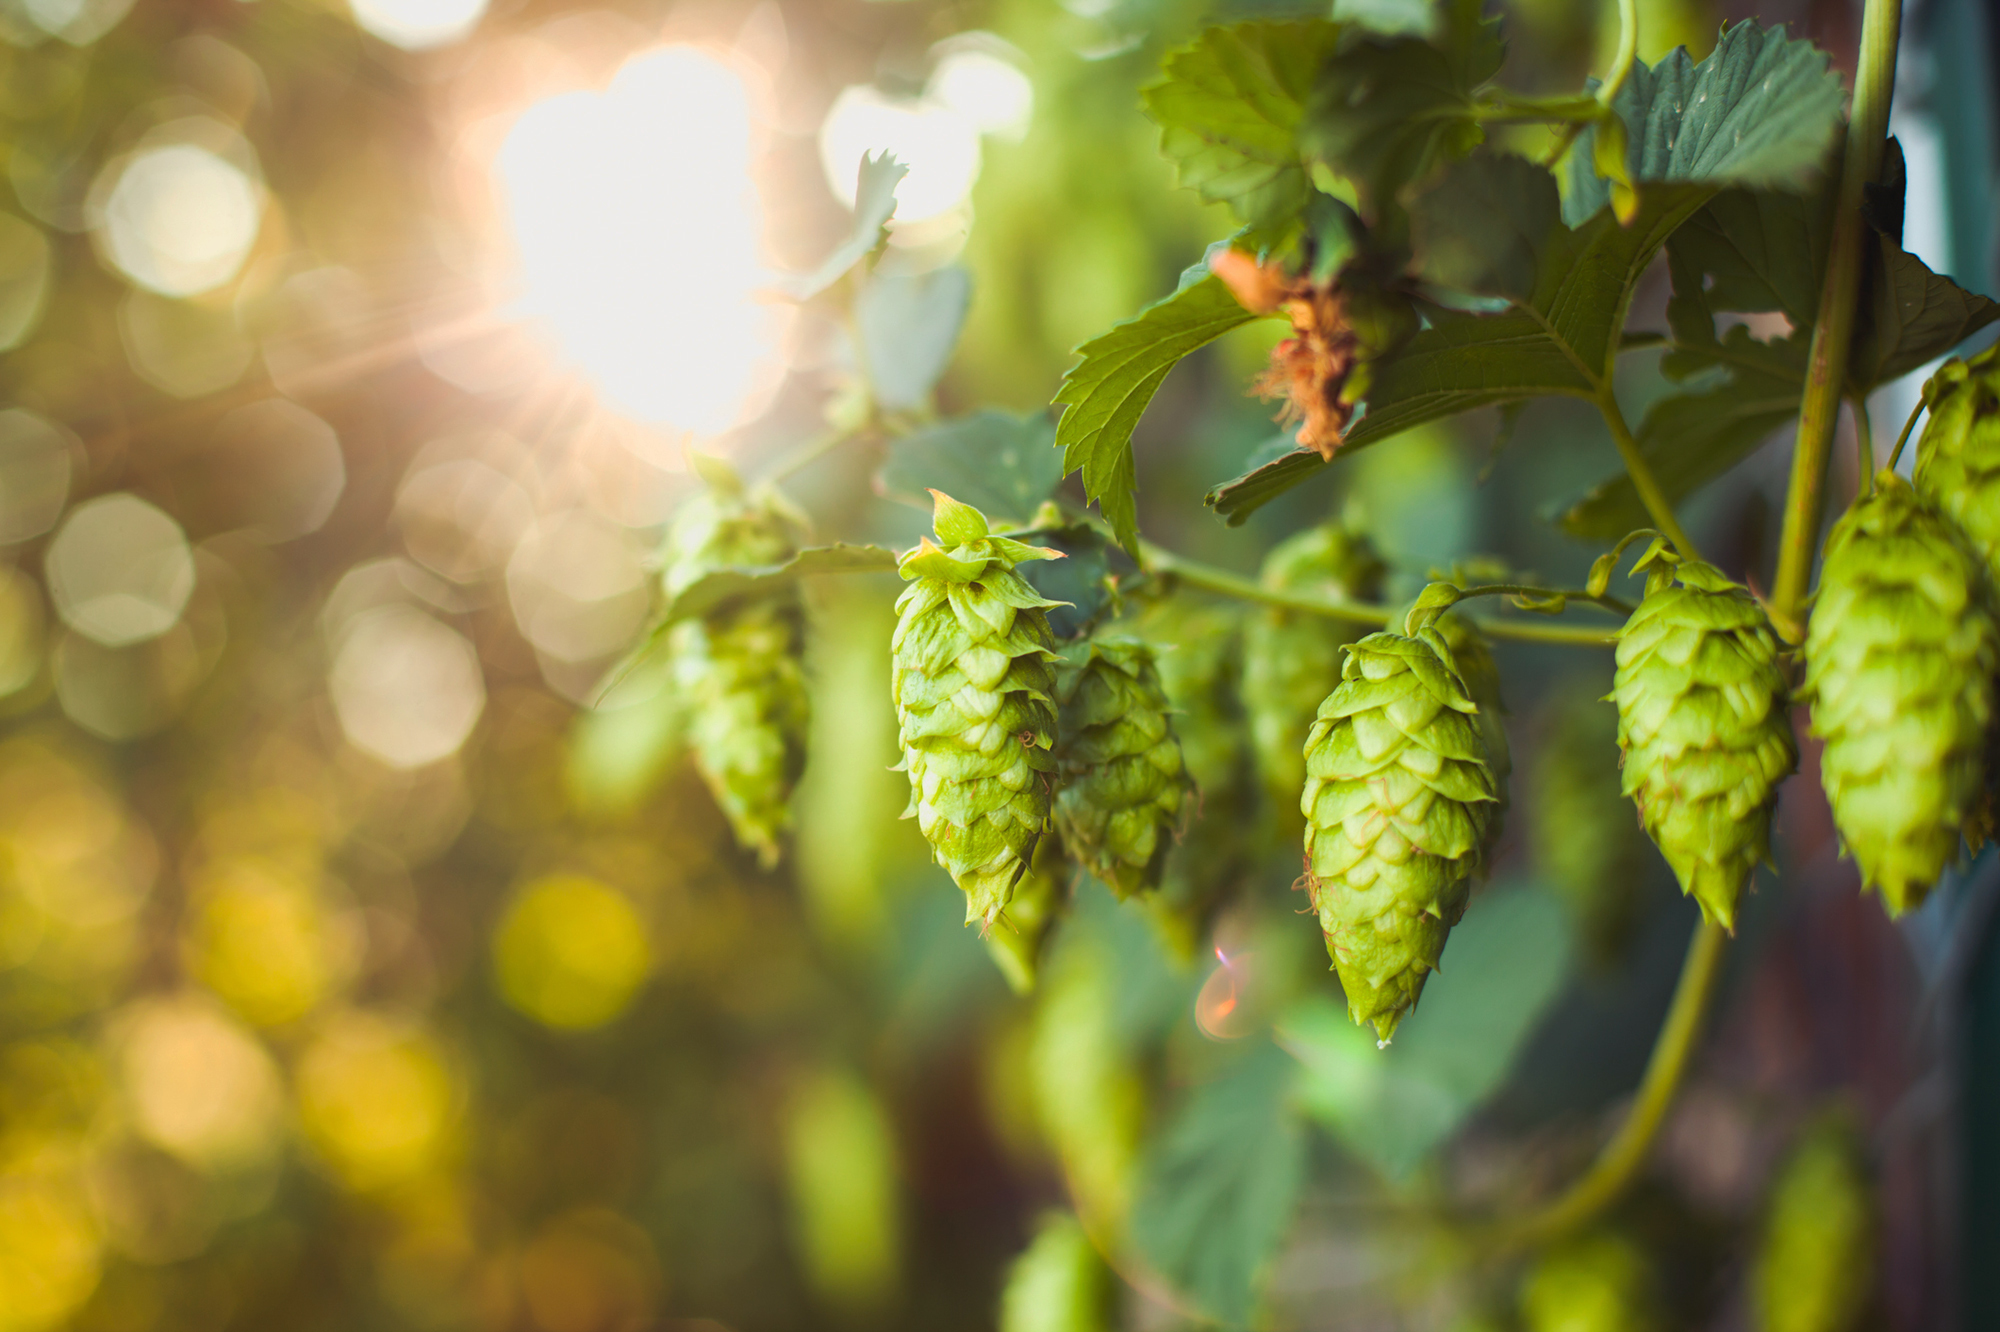 The spike in demand for small-batch beers has infused new life into small, family owned hop farms that were teetering on the edge of bankruptcy. Tim Newman/Getty Images